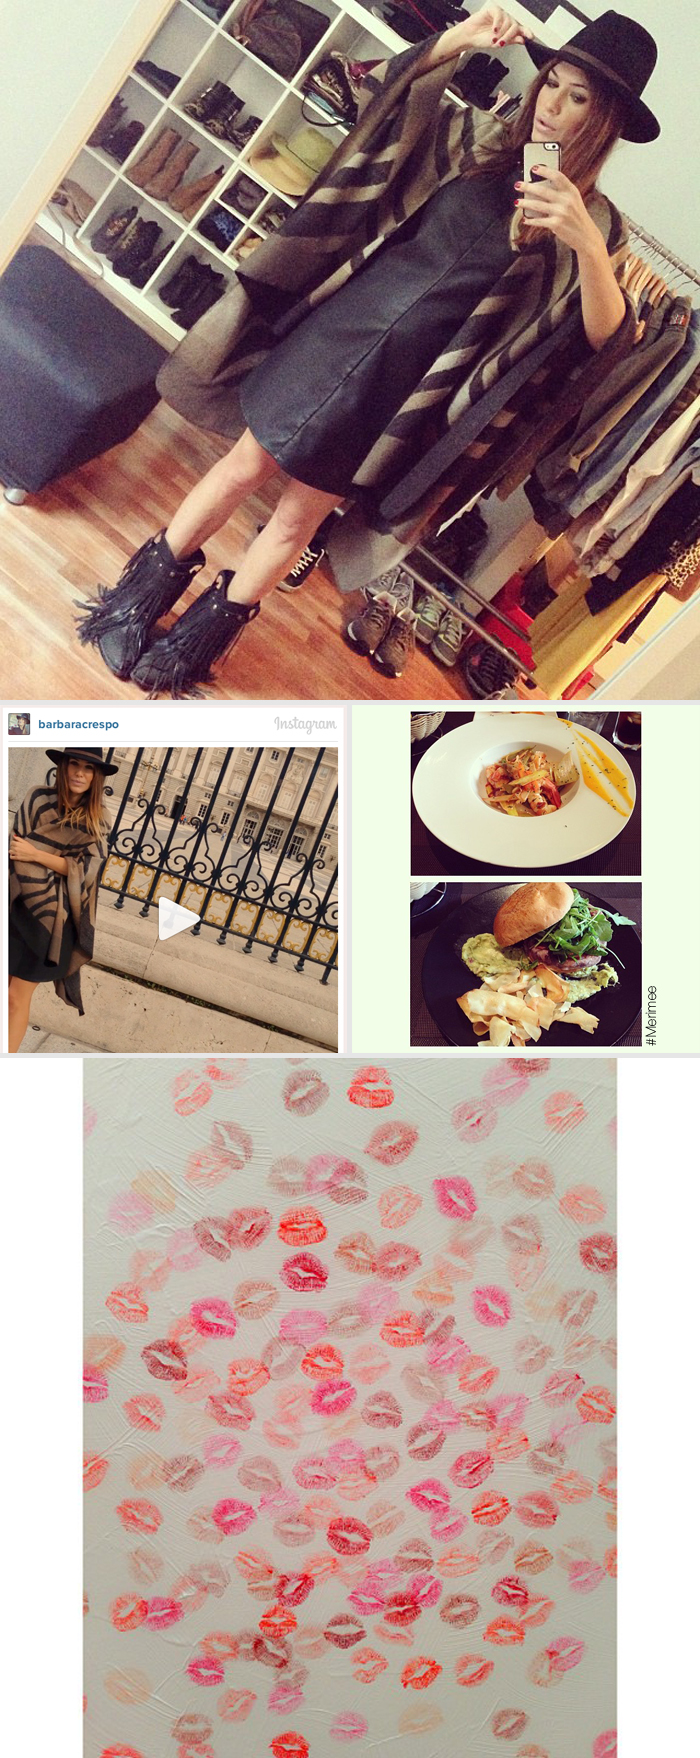 notes of the week instagram tumblr photography instavideo barbara crespo